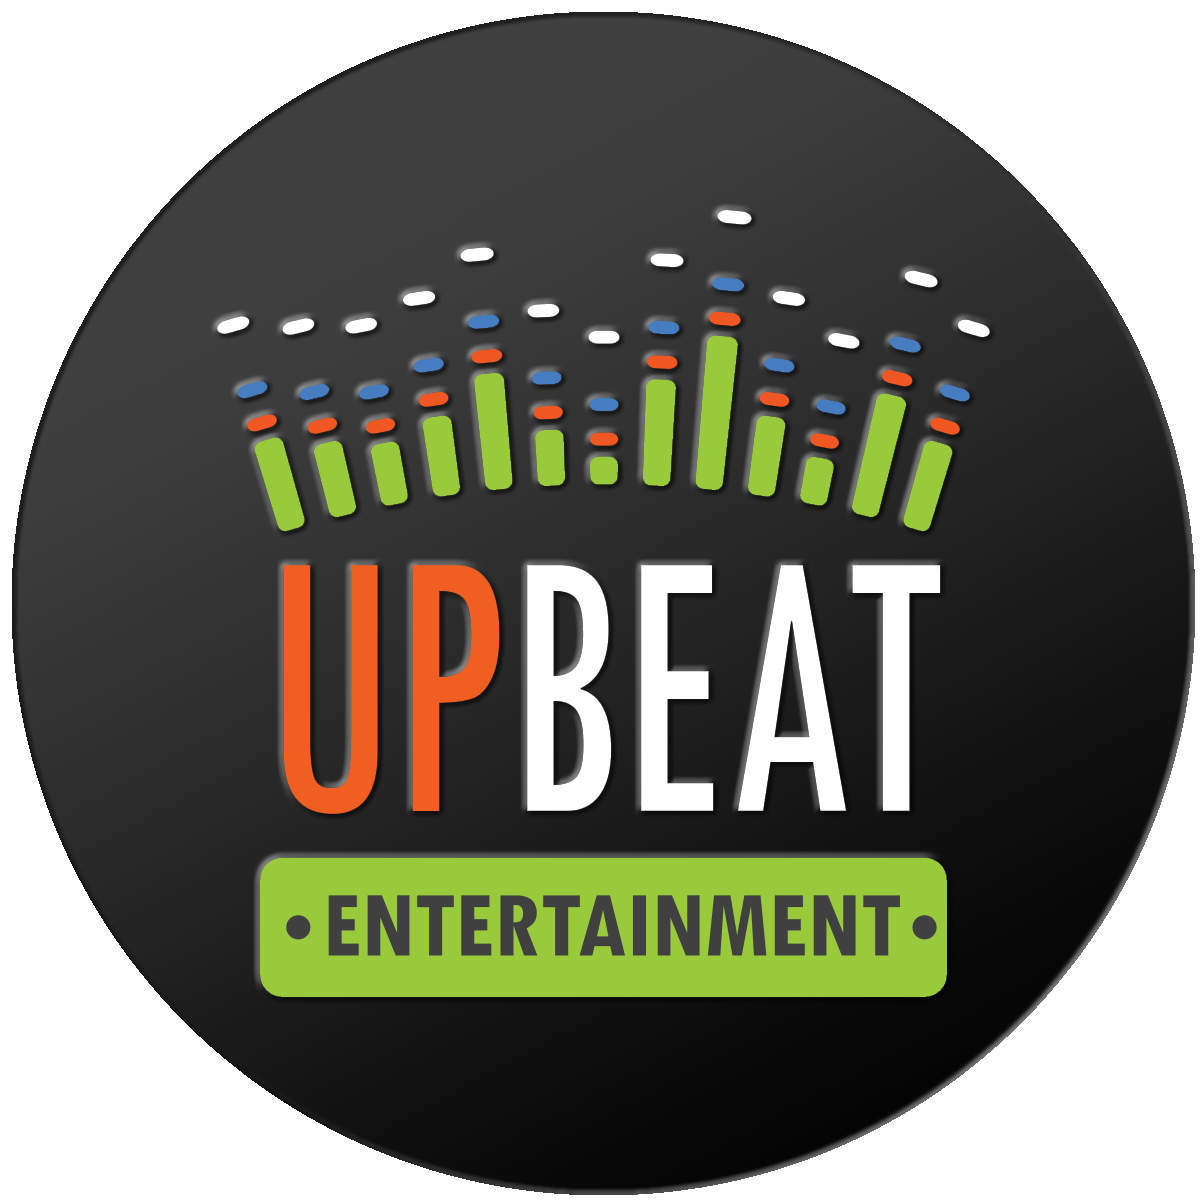 Upbeat Entertainment